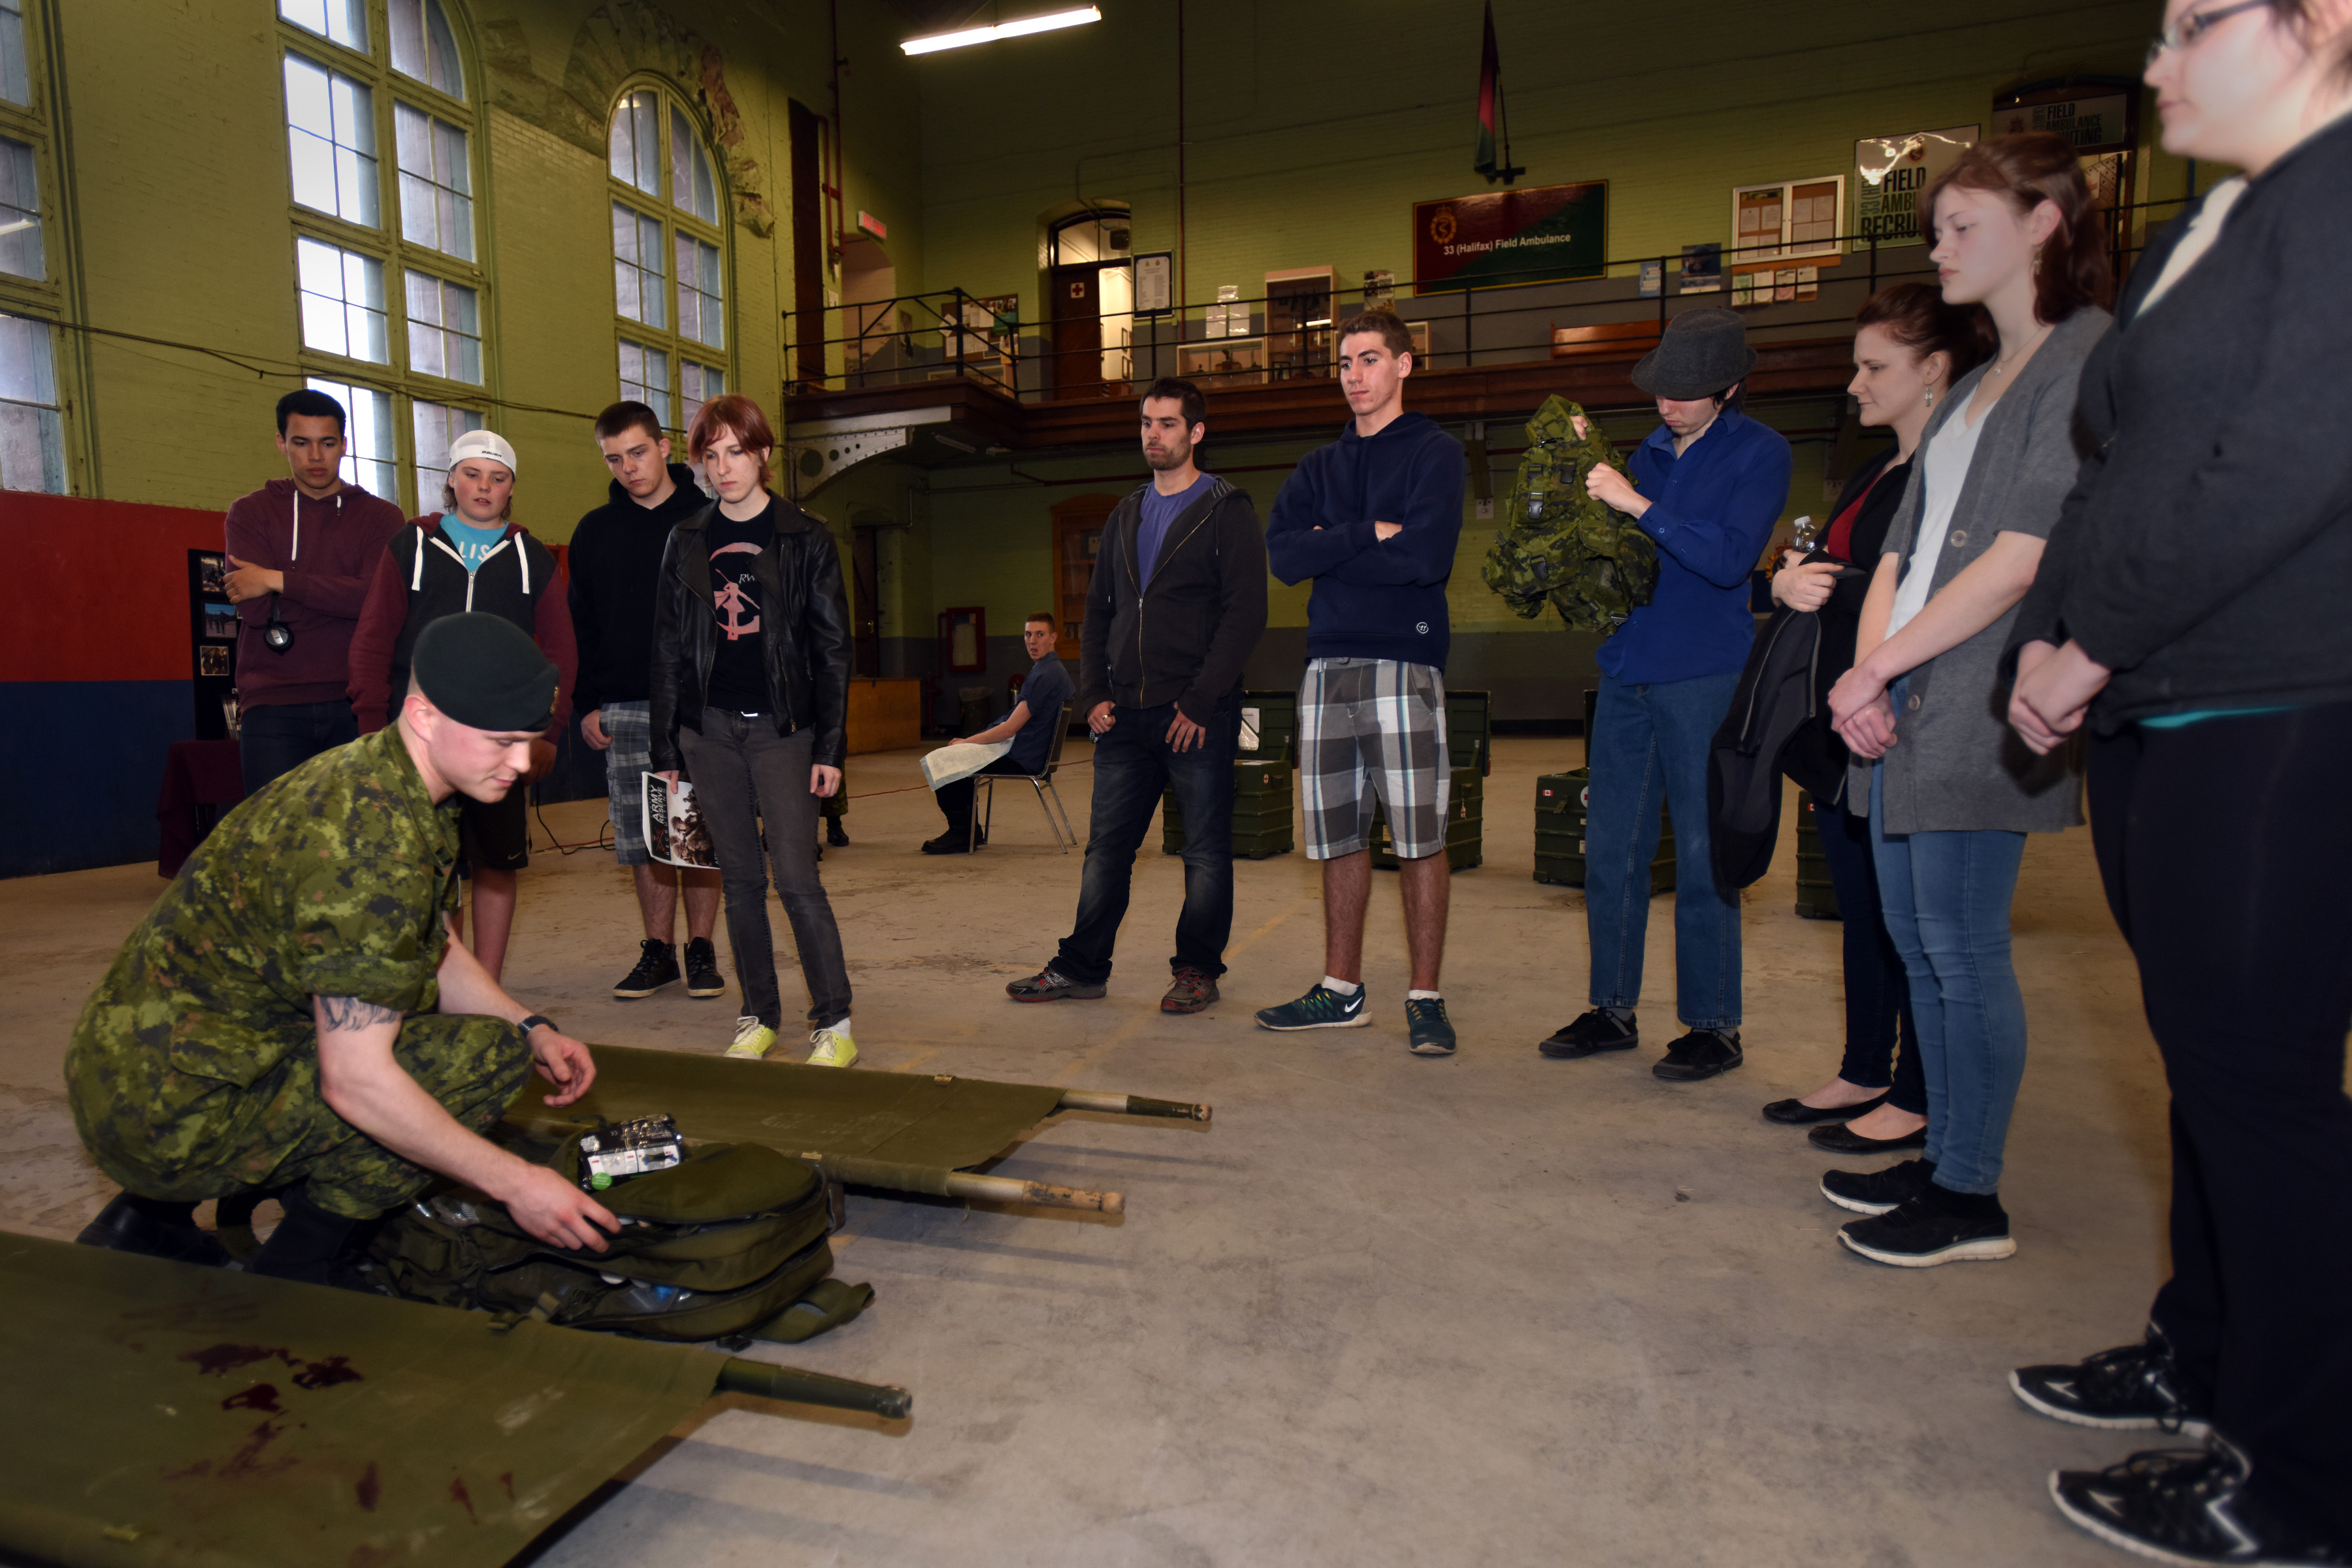 Corporal Bradley DeGrunchy, a medic with 33 Field Ambulance in Halifax, Nova Scotia, talks about a medic's kit bag to candidates of the Army Civilian Engagement program in the Halifax Armouries on May 7, 2015.